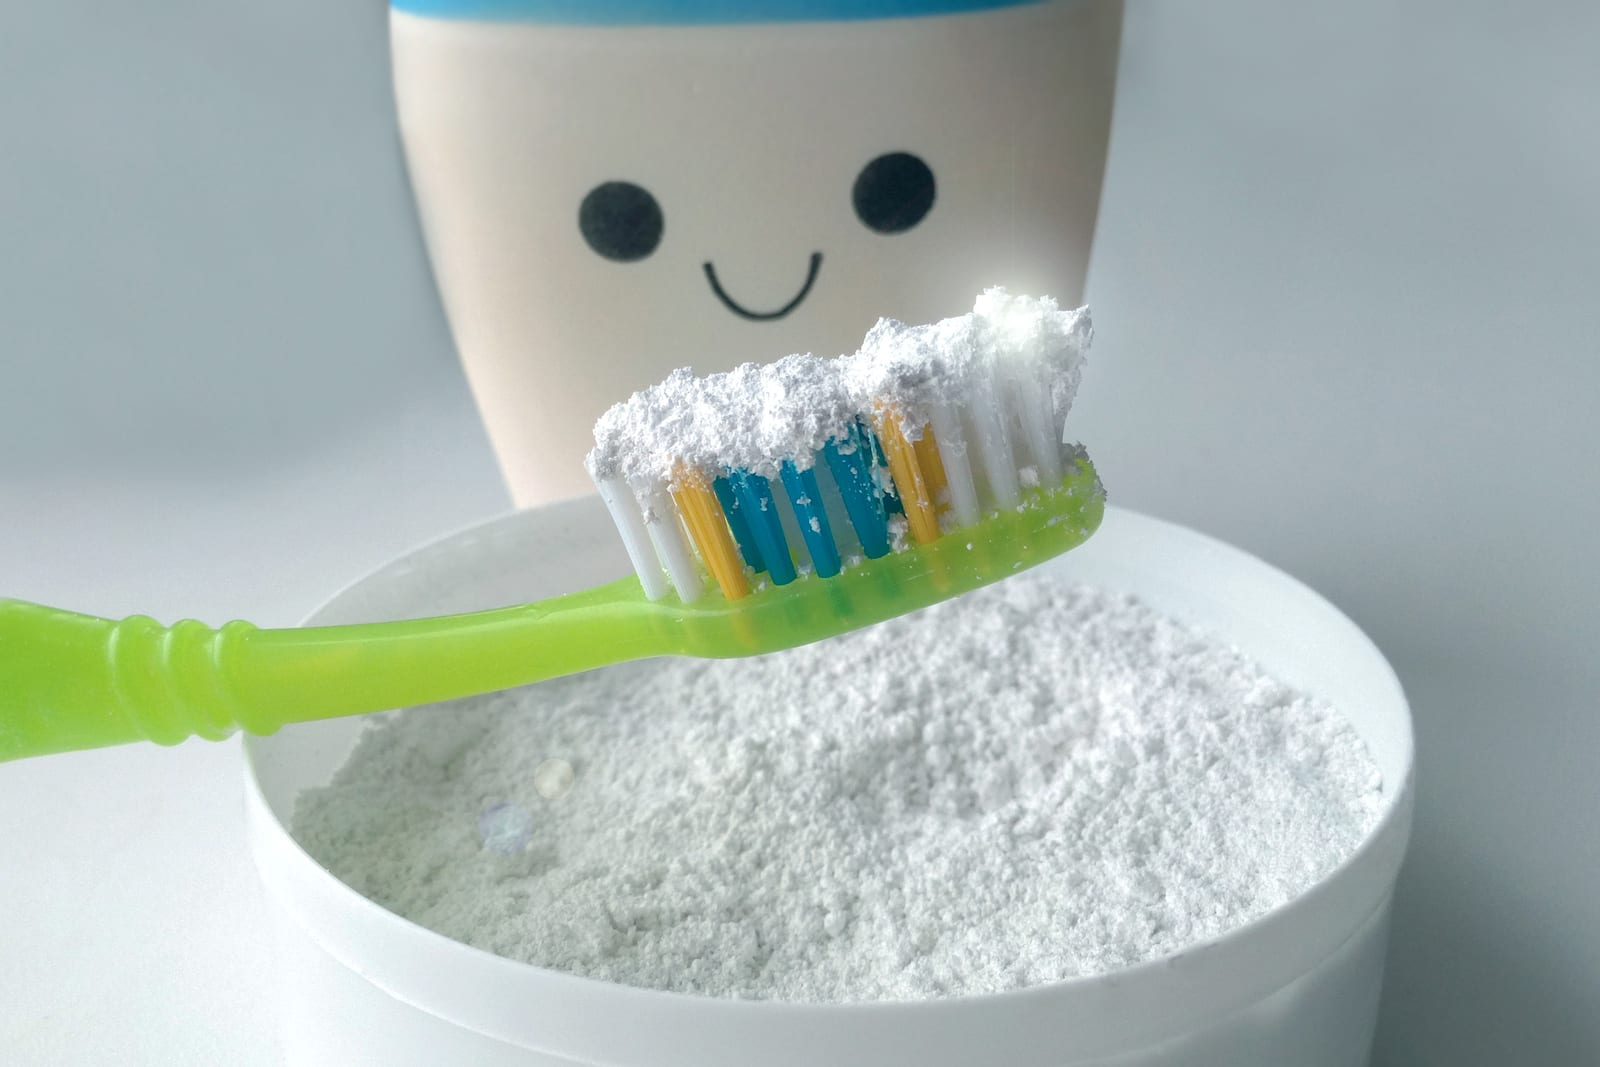 Tooth powder and brush good cleaning for healthy teeth, a symbol of natural cleanliness and care